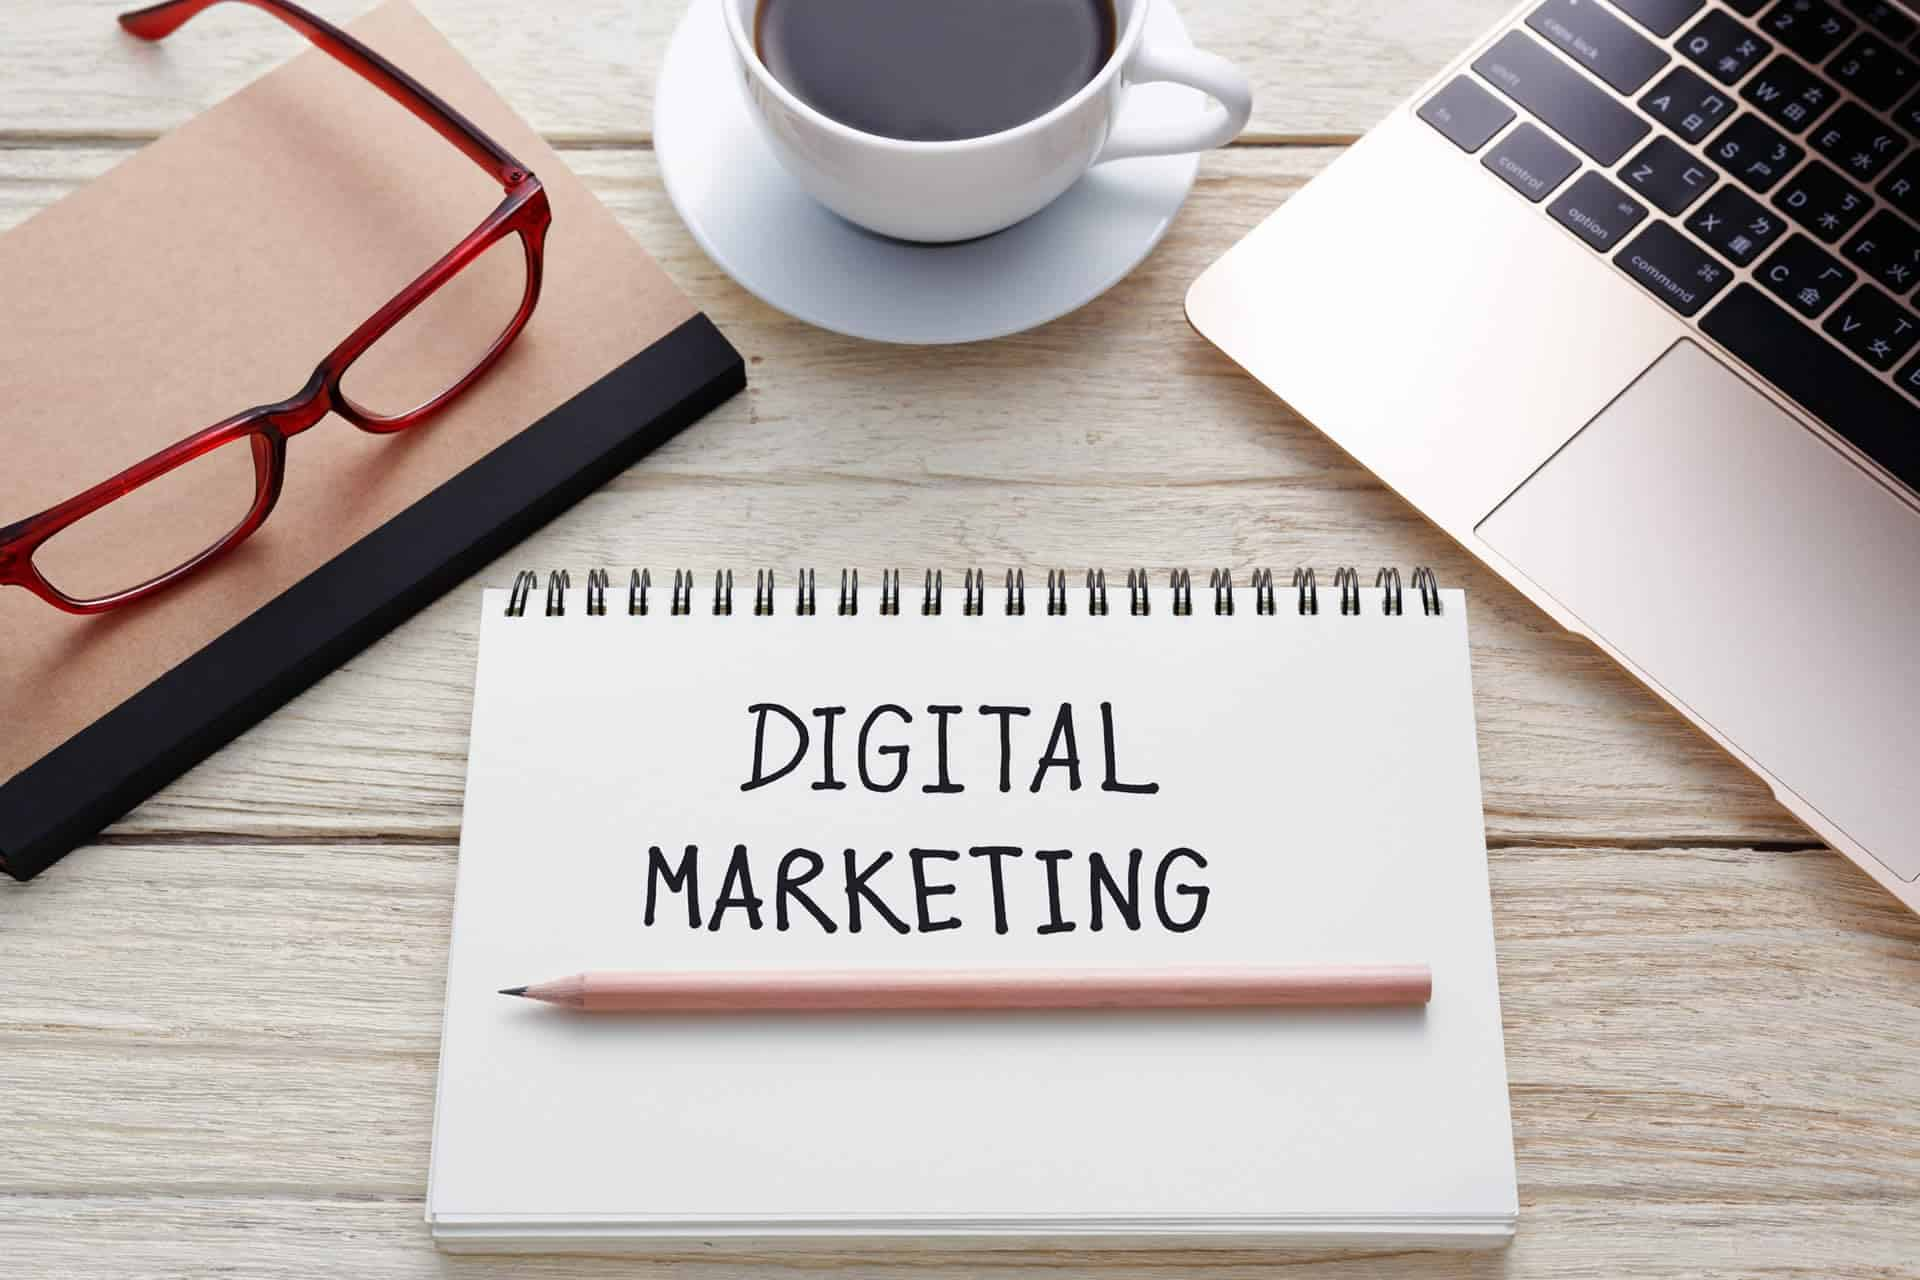 digital-content-marketing-ideas